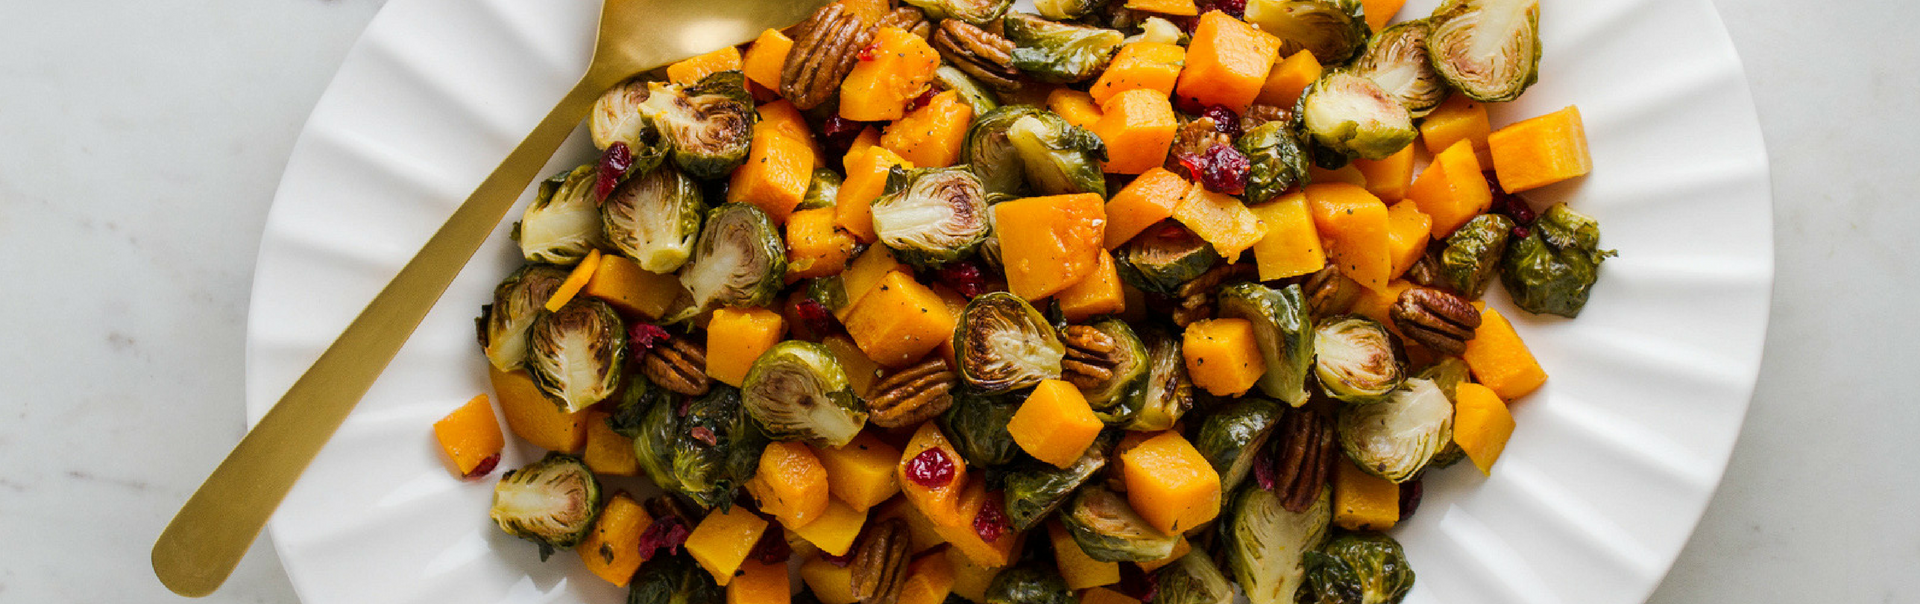 Roasted Brussel Sprouts, Squash, Cranberries & Pecans